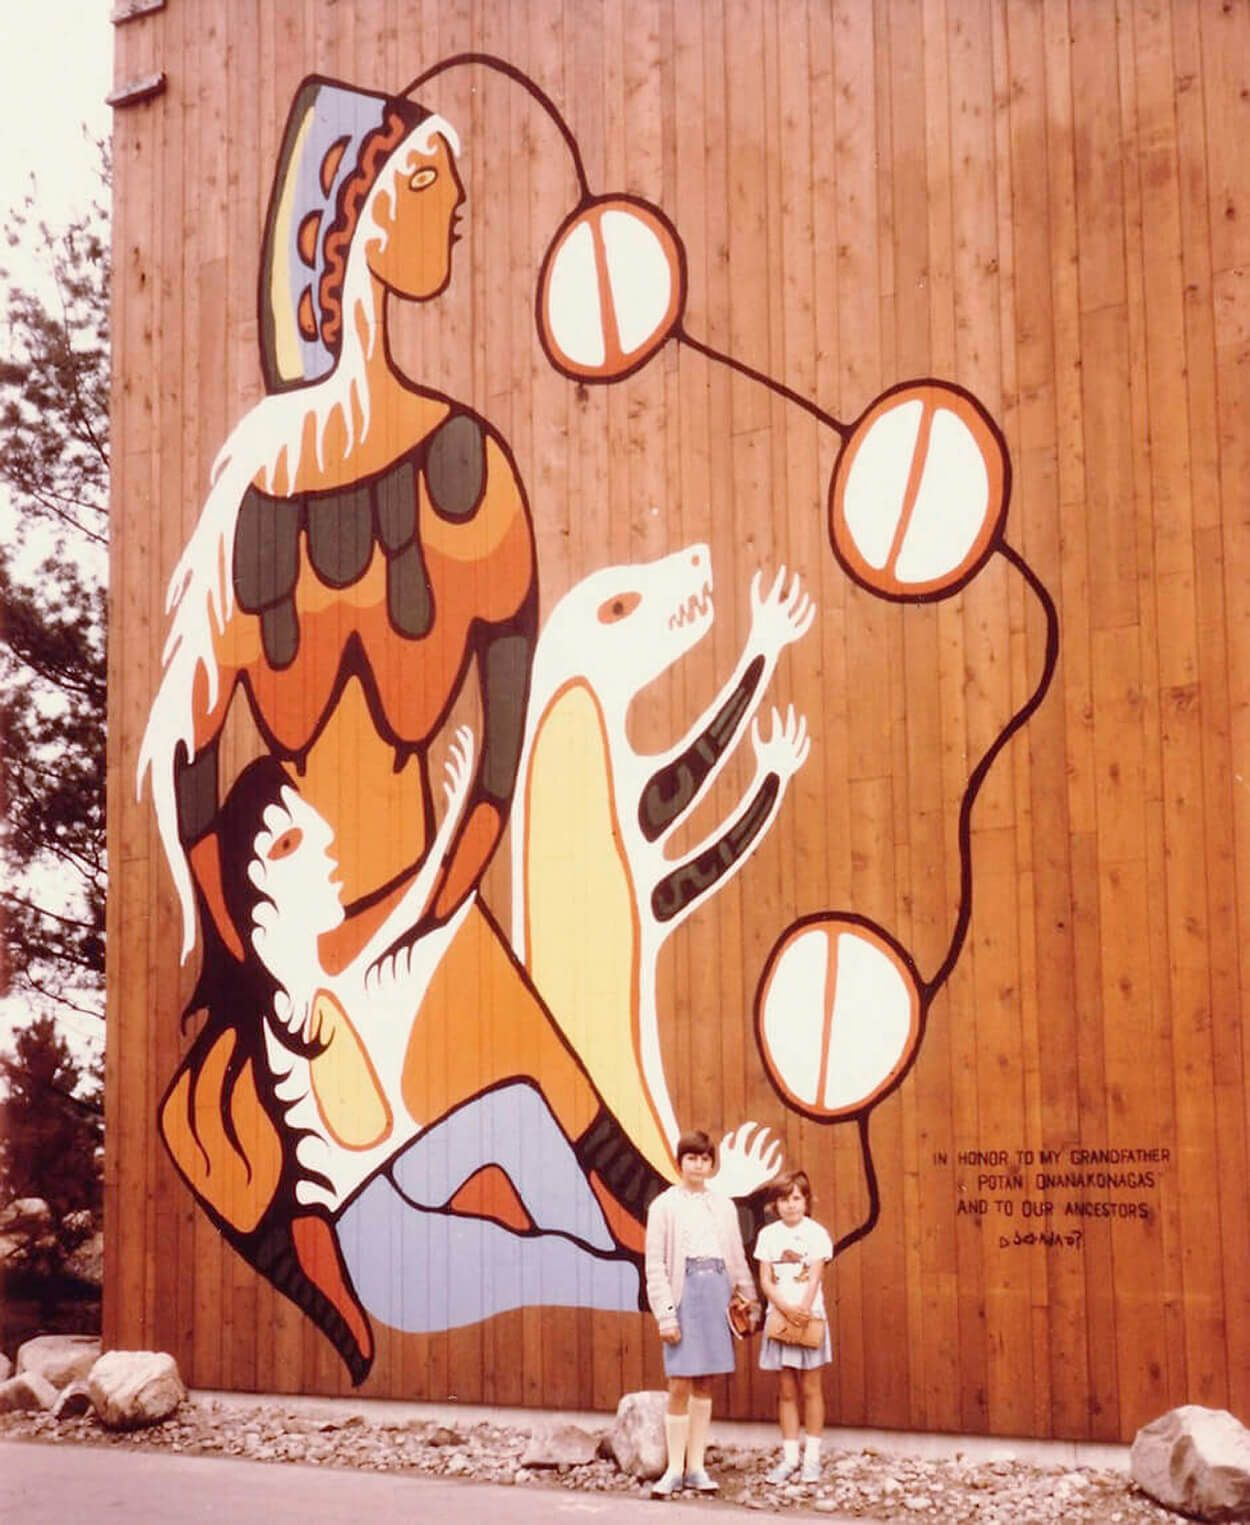 Carl Ray helped Norval Morrisseau paint this Expo 67 mural.